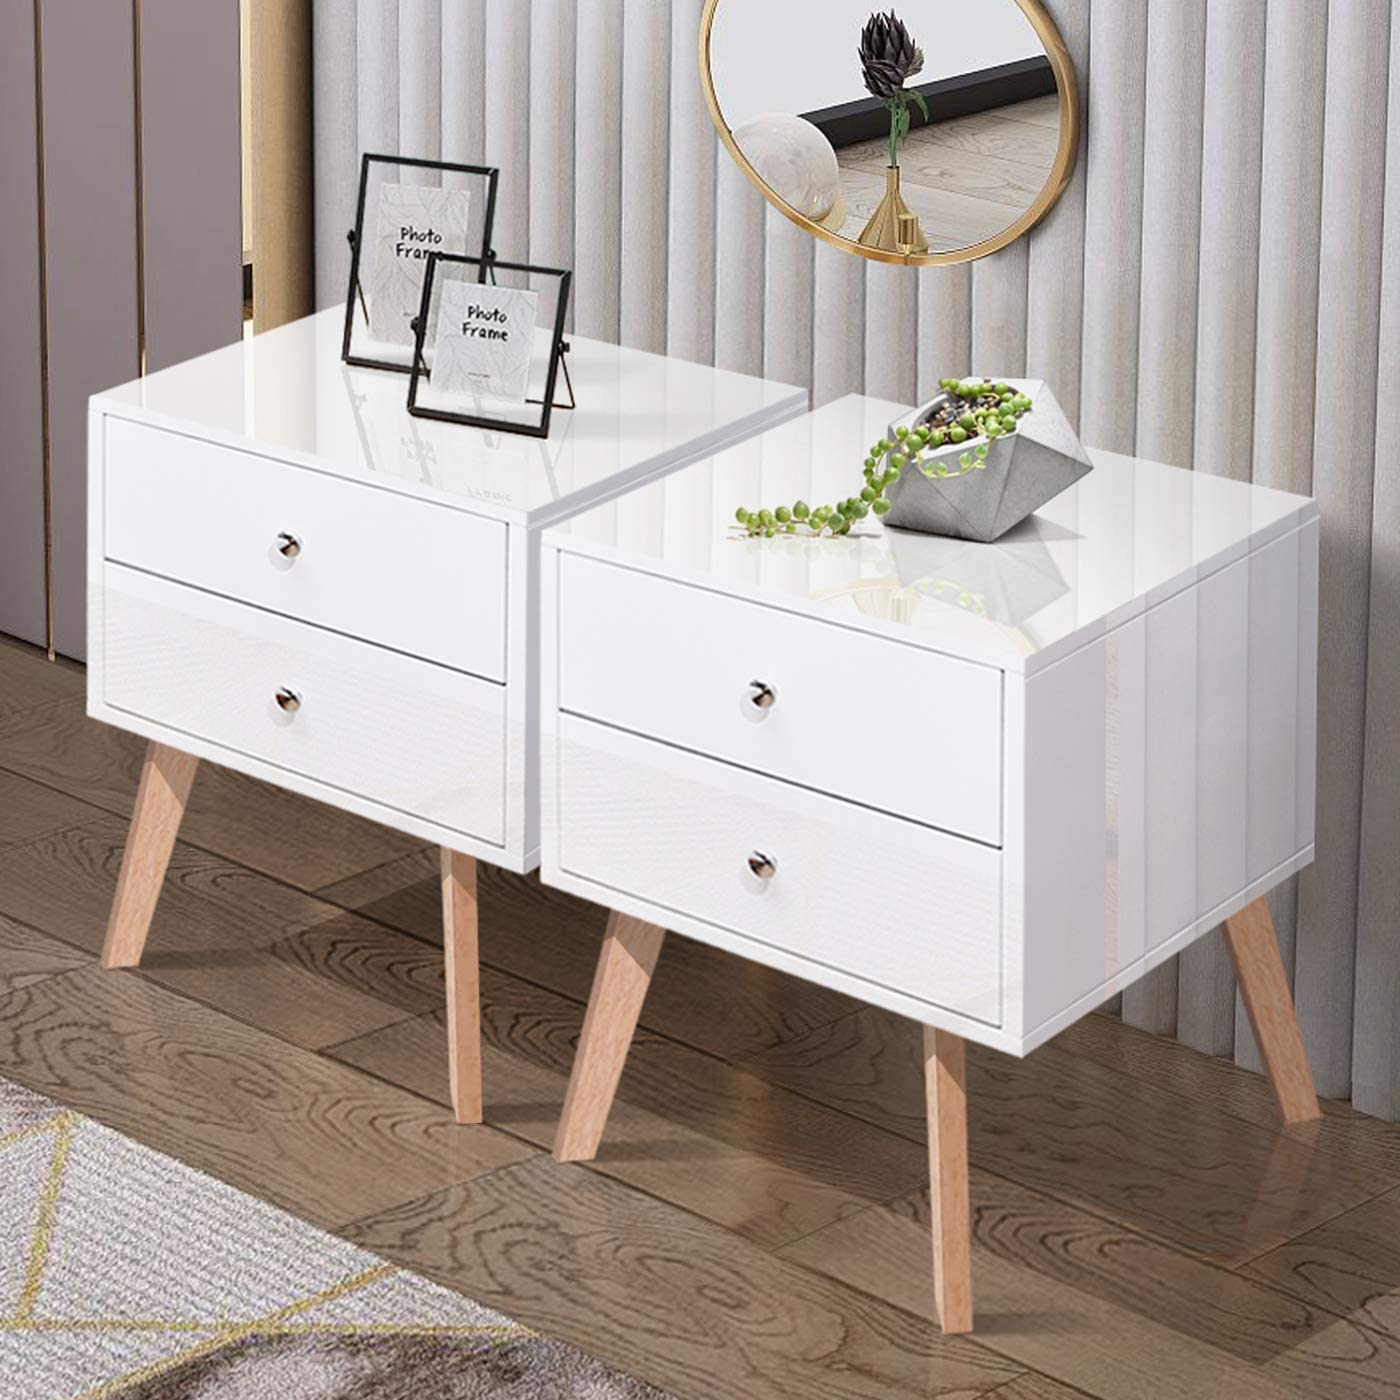 TaoHFE White Nightstand Bedroom Night Stand End Table Side Table Coffee Table with 2 Drawers, Wood Nightstand for Bedroom Living Room Study Room End Tables 2